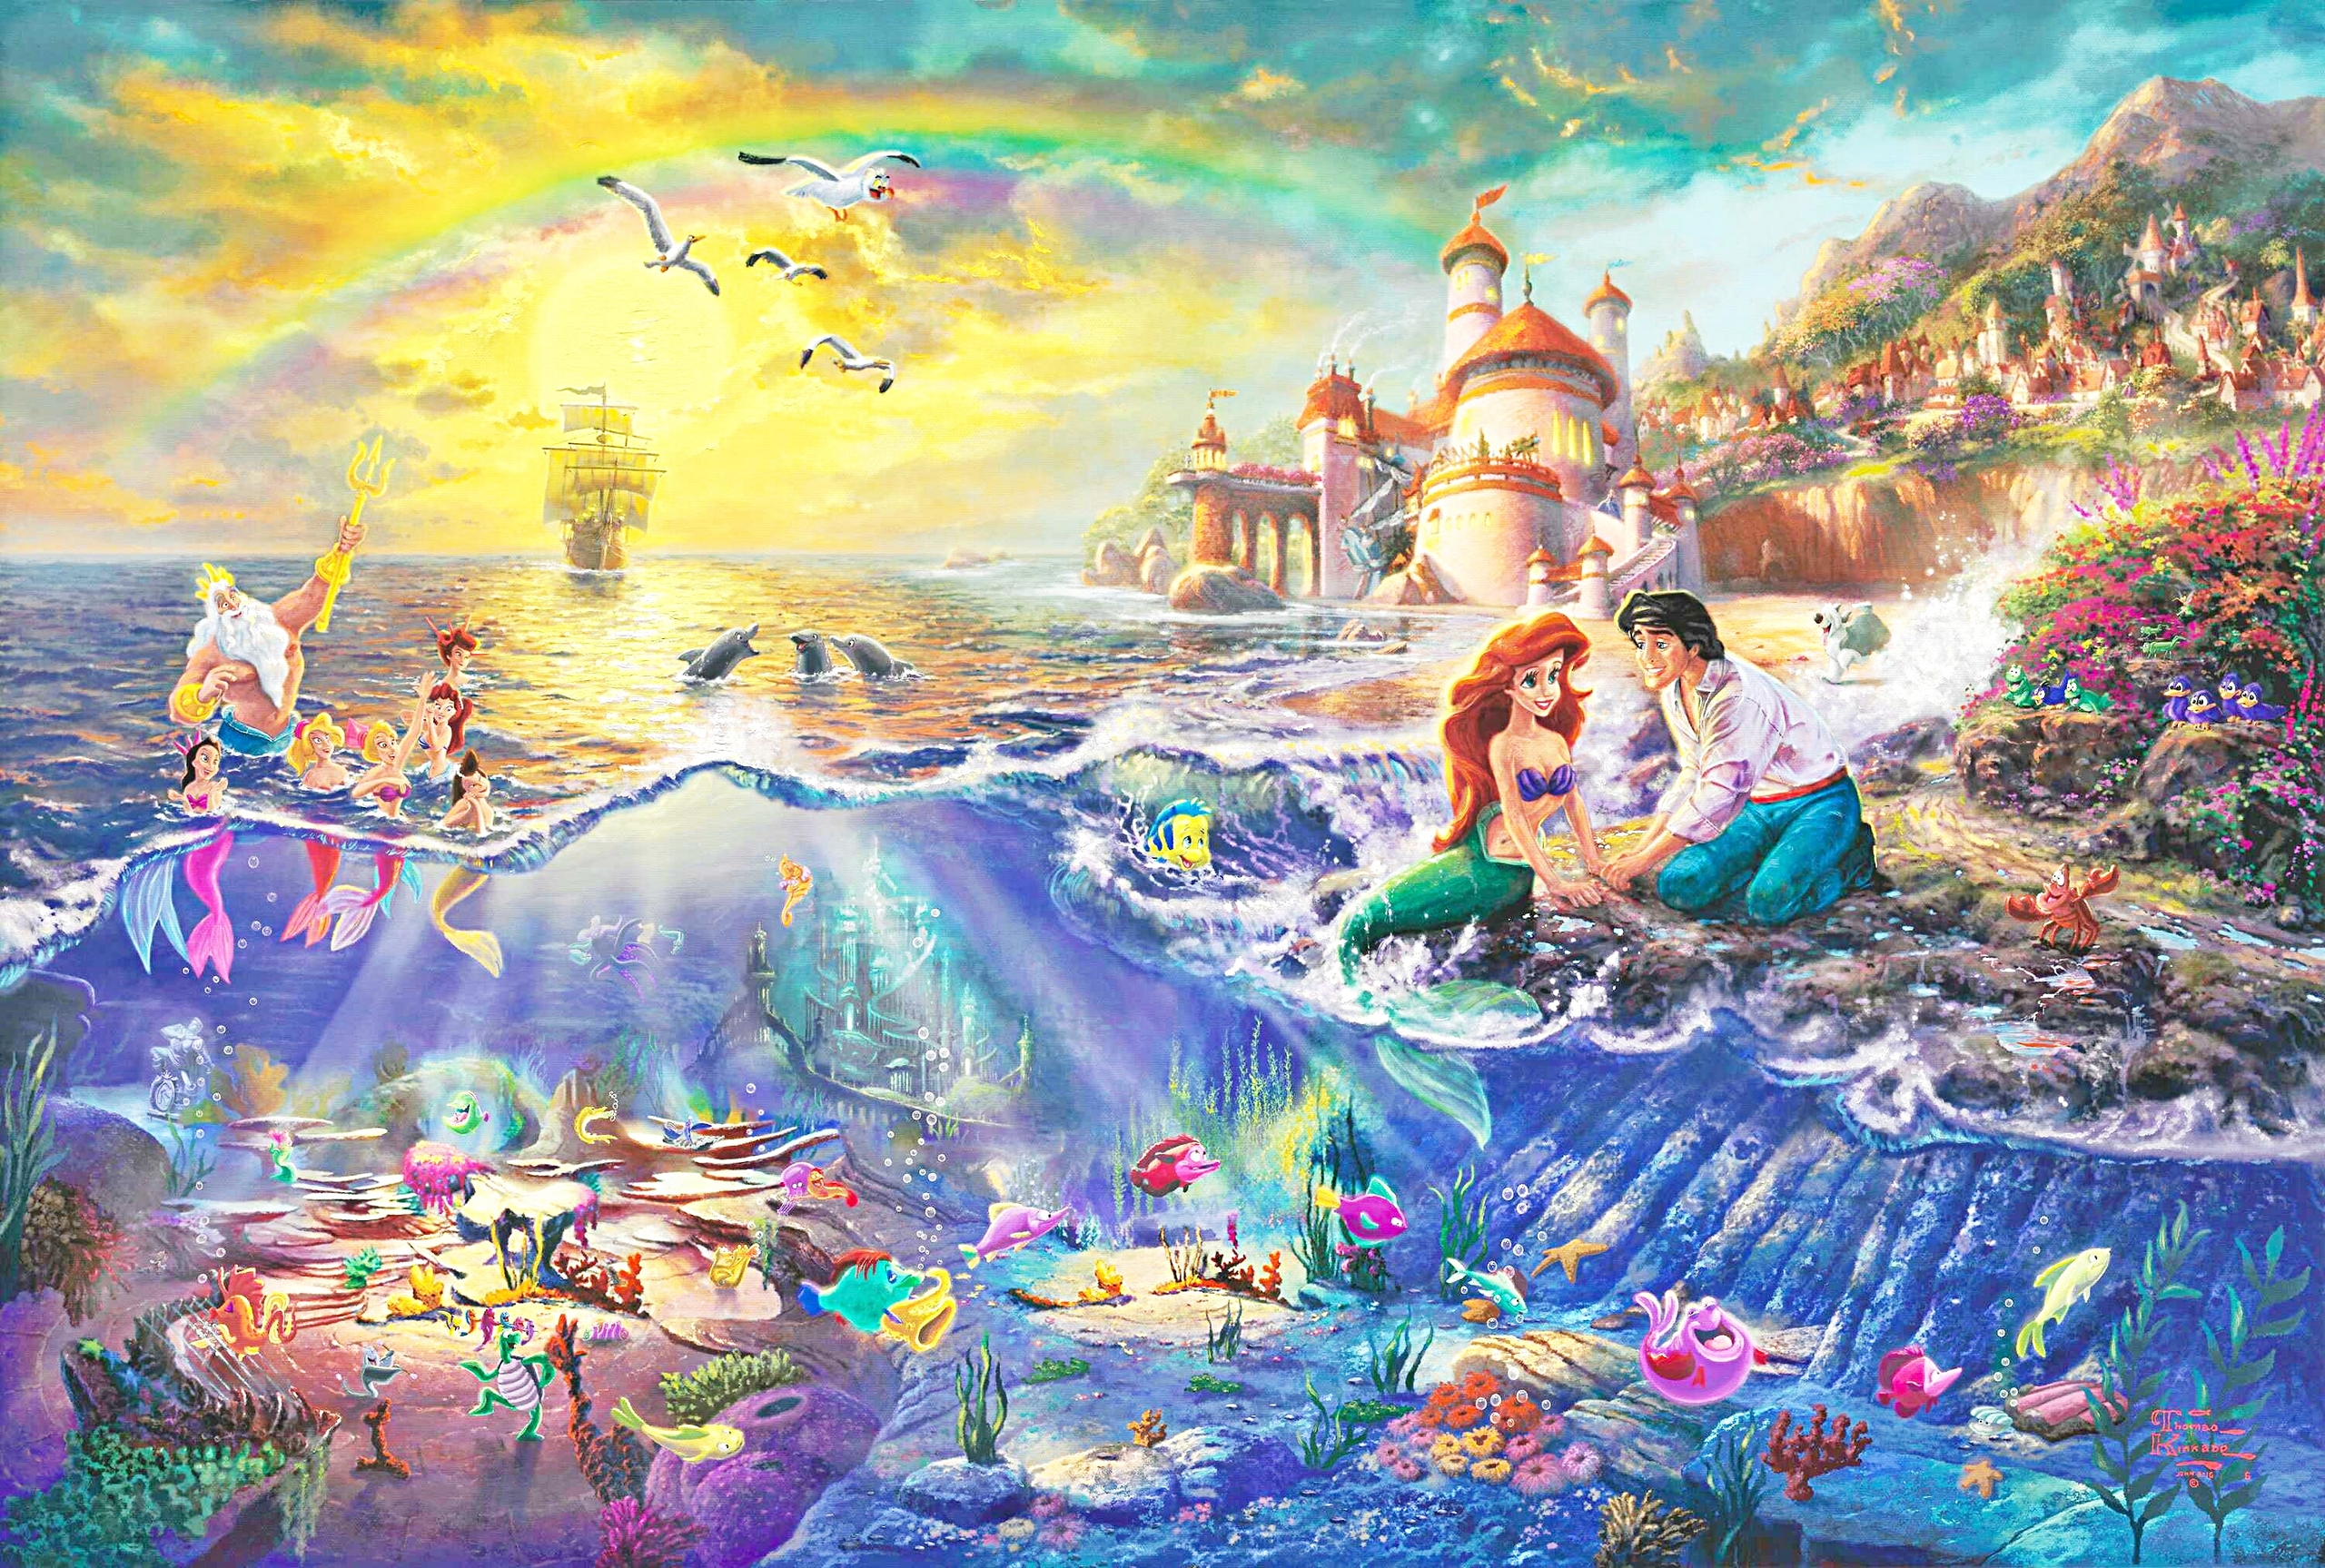 Personaggi Disney Immagini Thomas Kinkade S Disney Paintings The